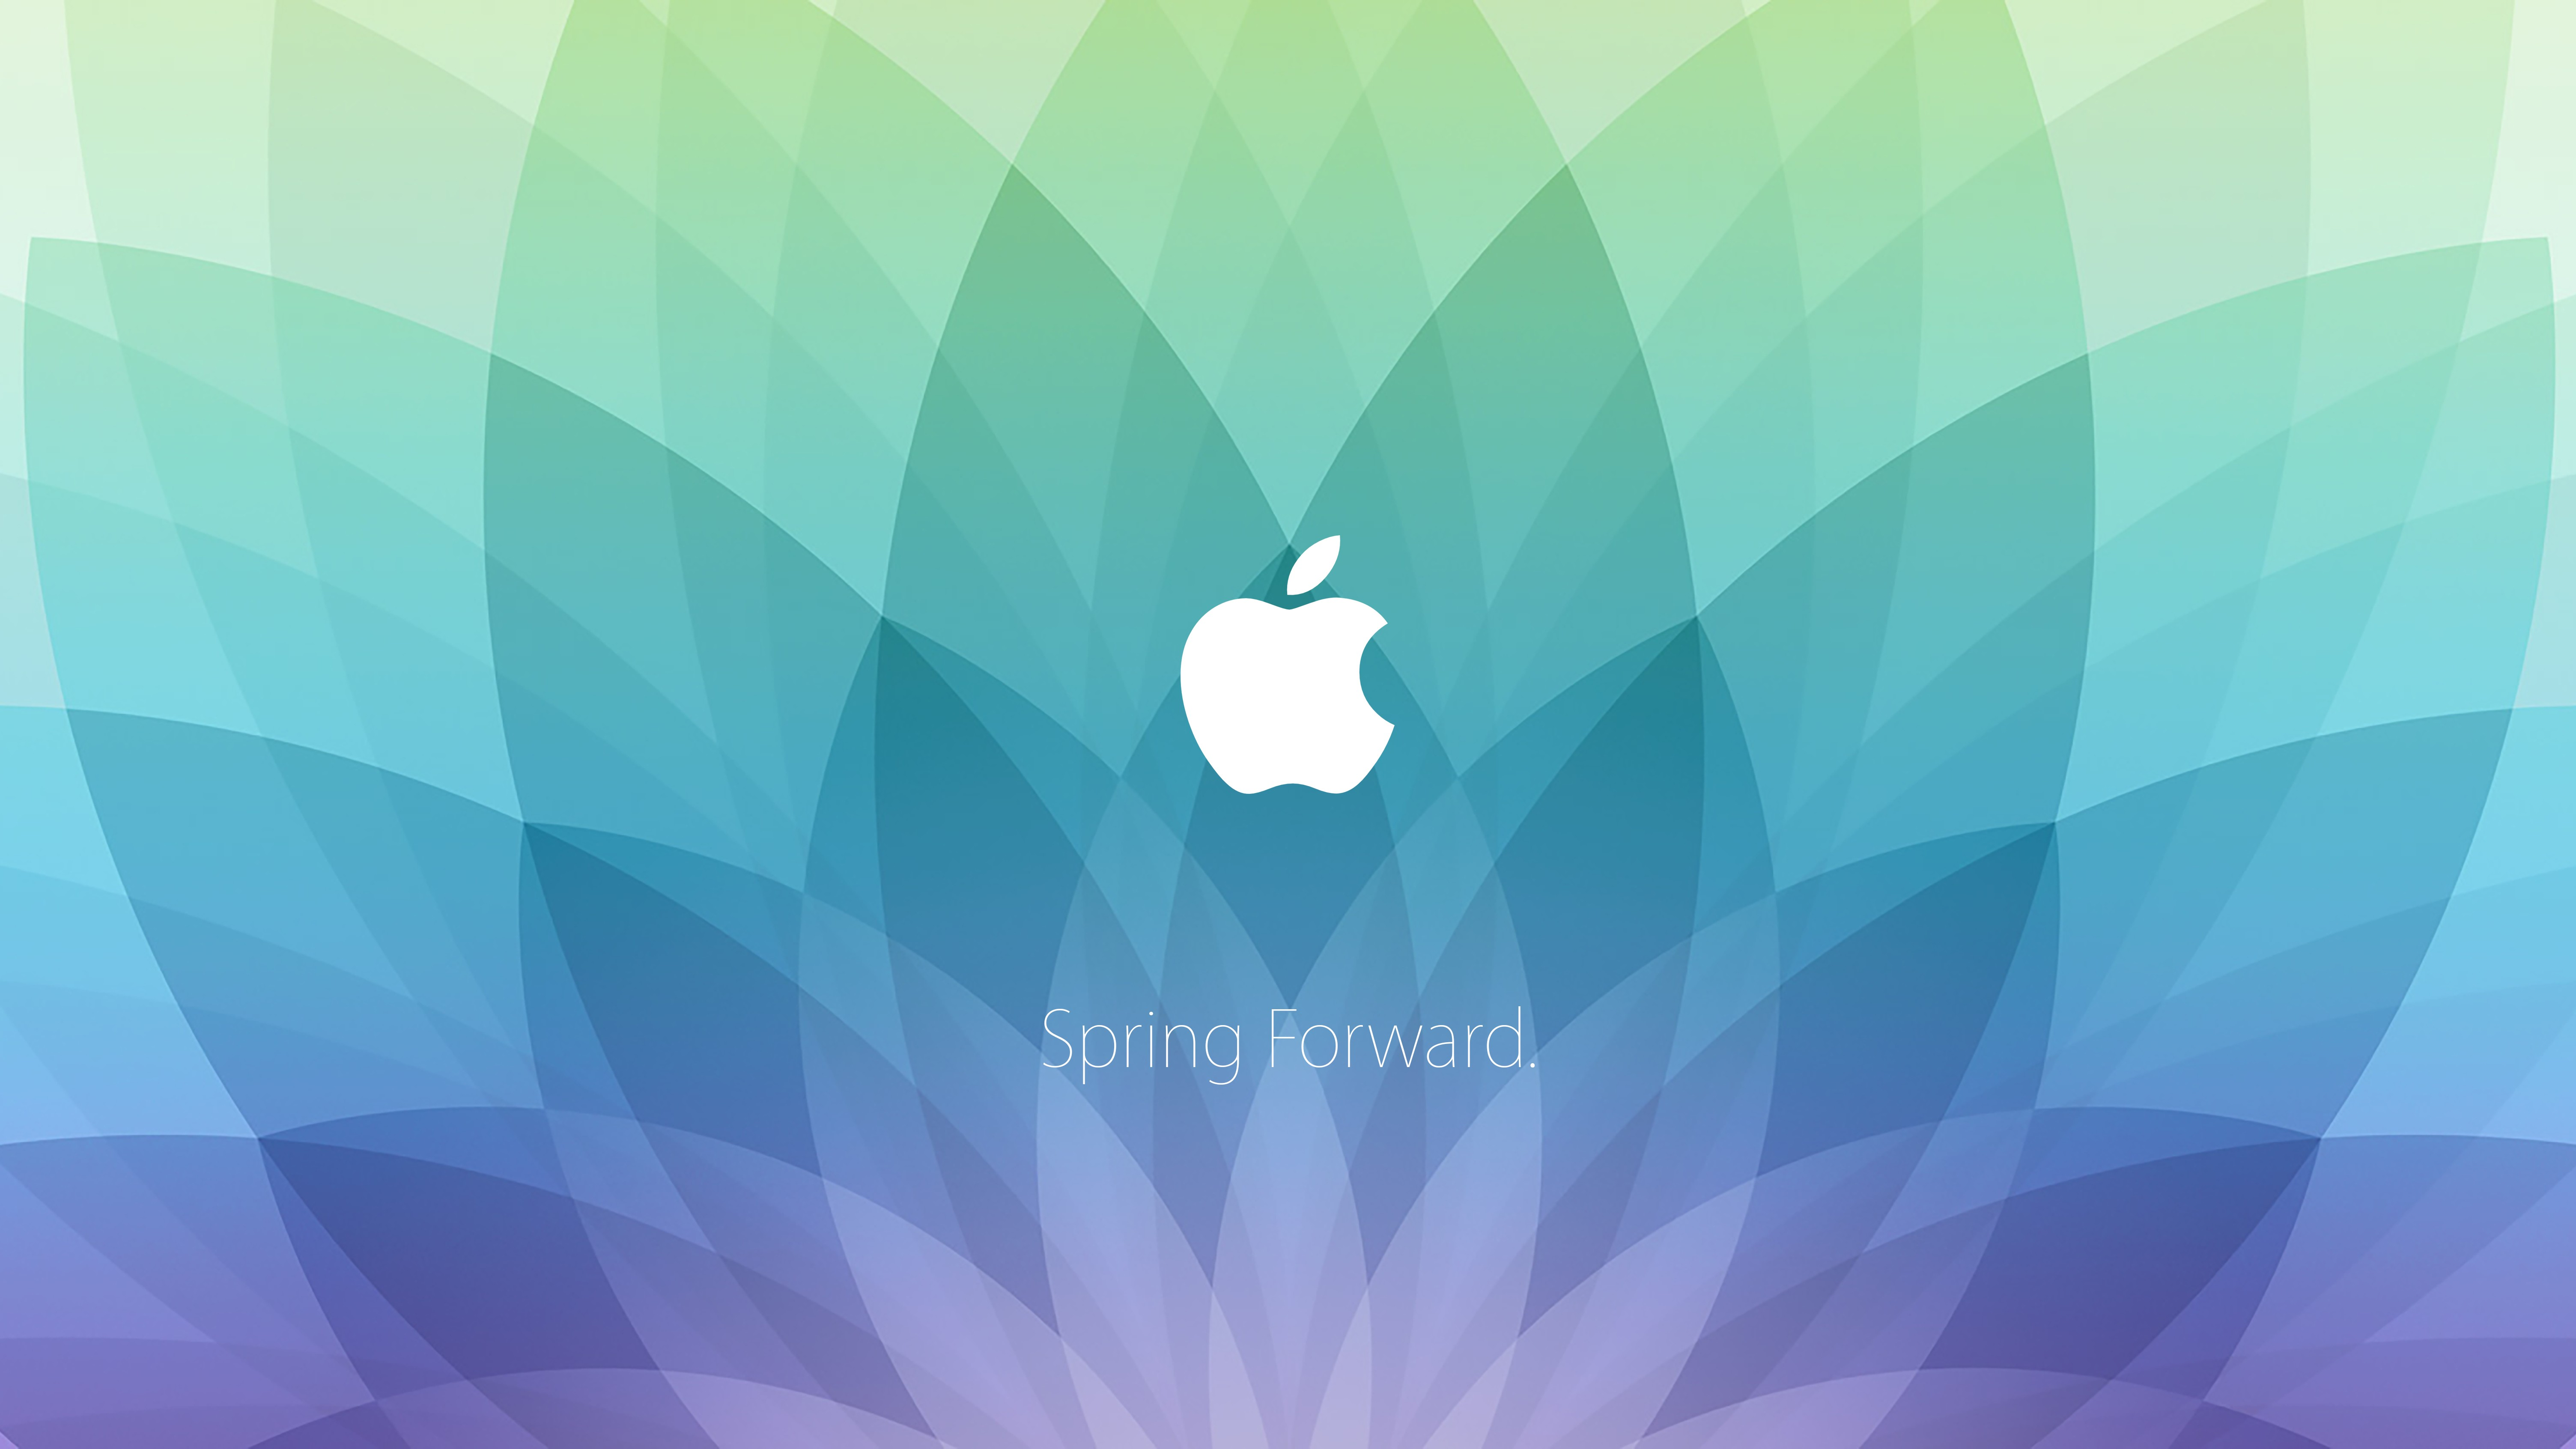 Best Wallpaper Mac Spring - Download-Apple-s-Spring-Forward-Event-Wallpaper-Right-Here-474435-8  You Should Have_906774.jpg